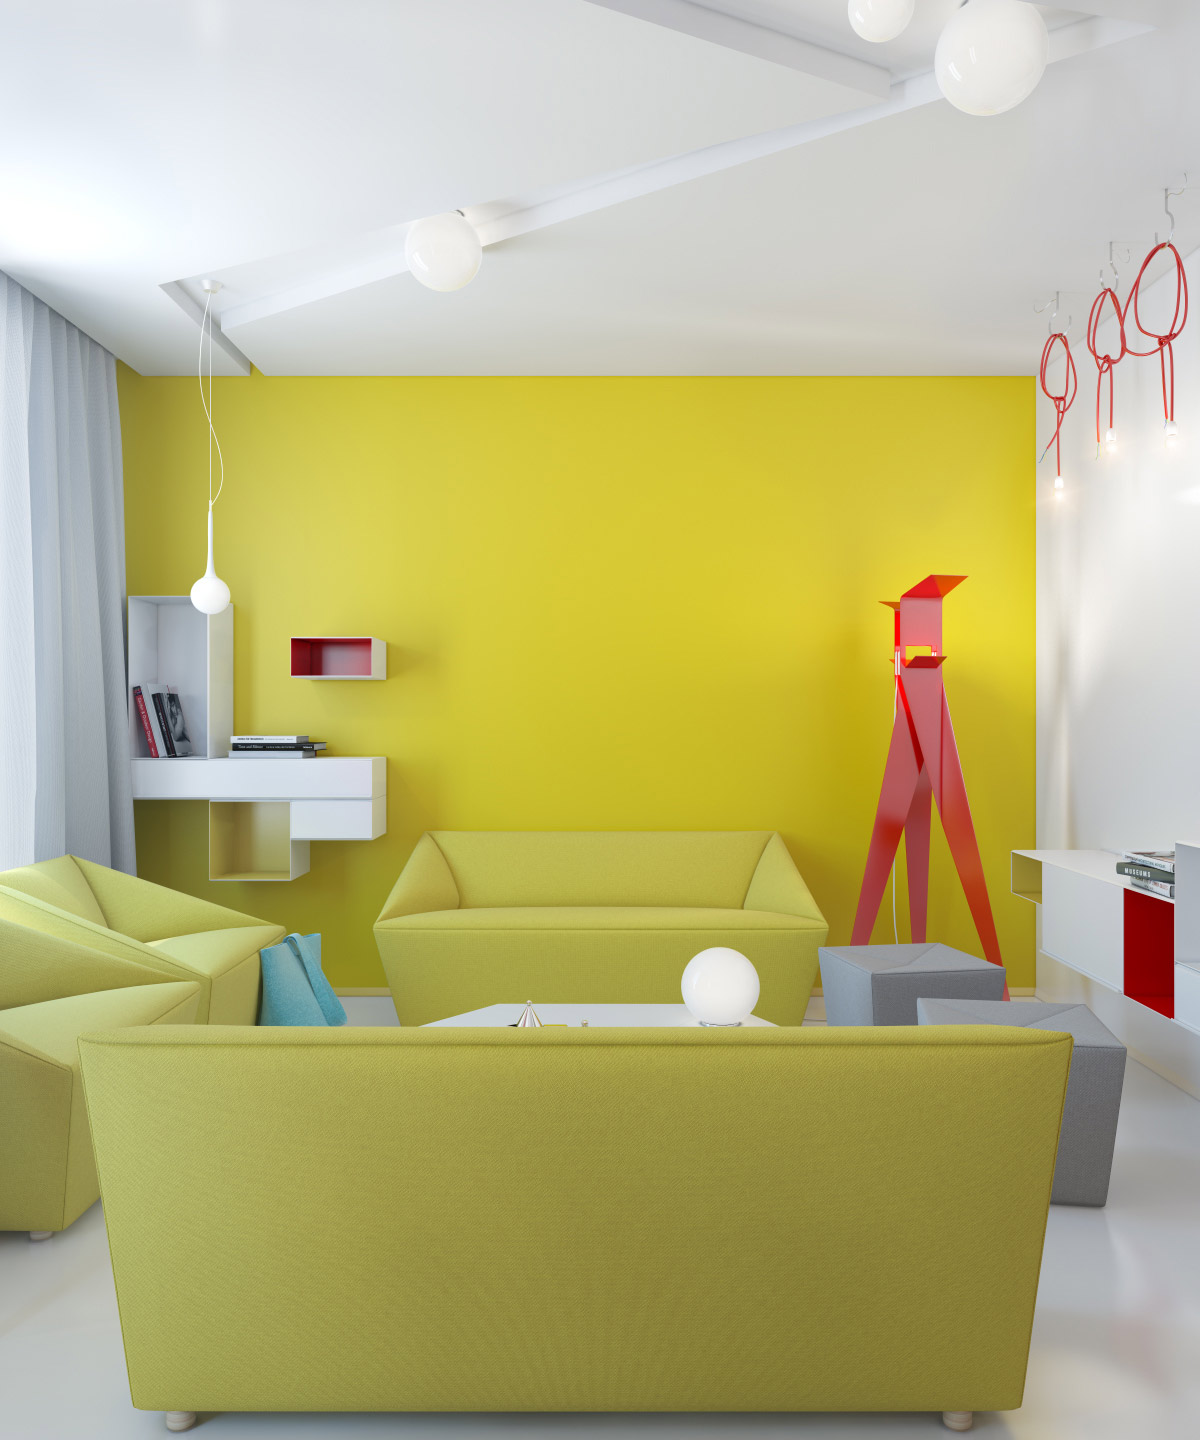 Small apartment zinging with color for Living room yellow accents